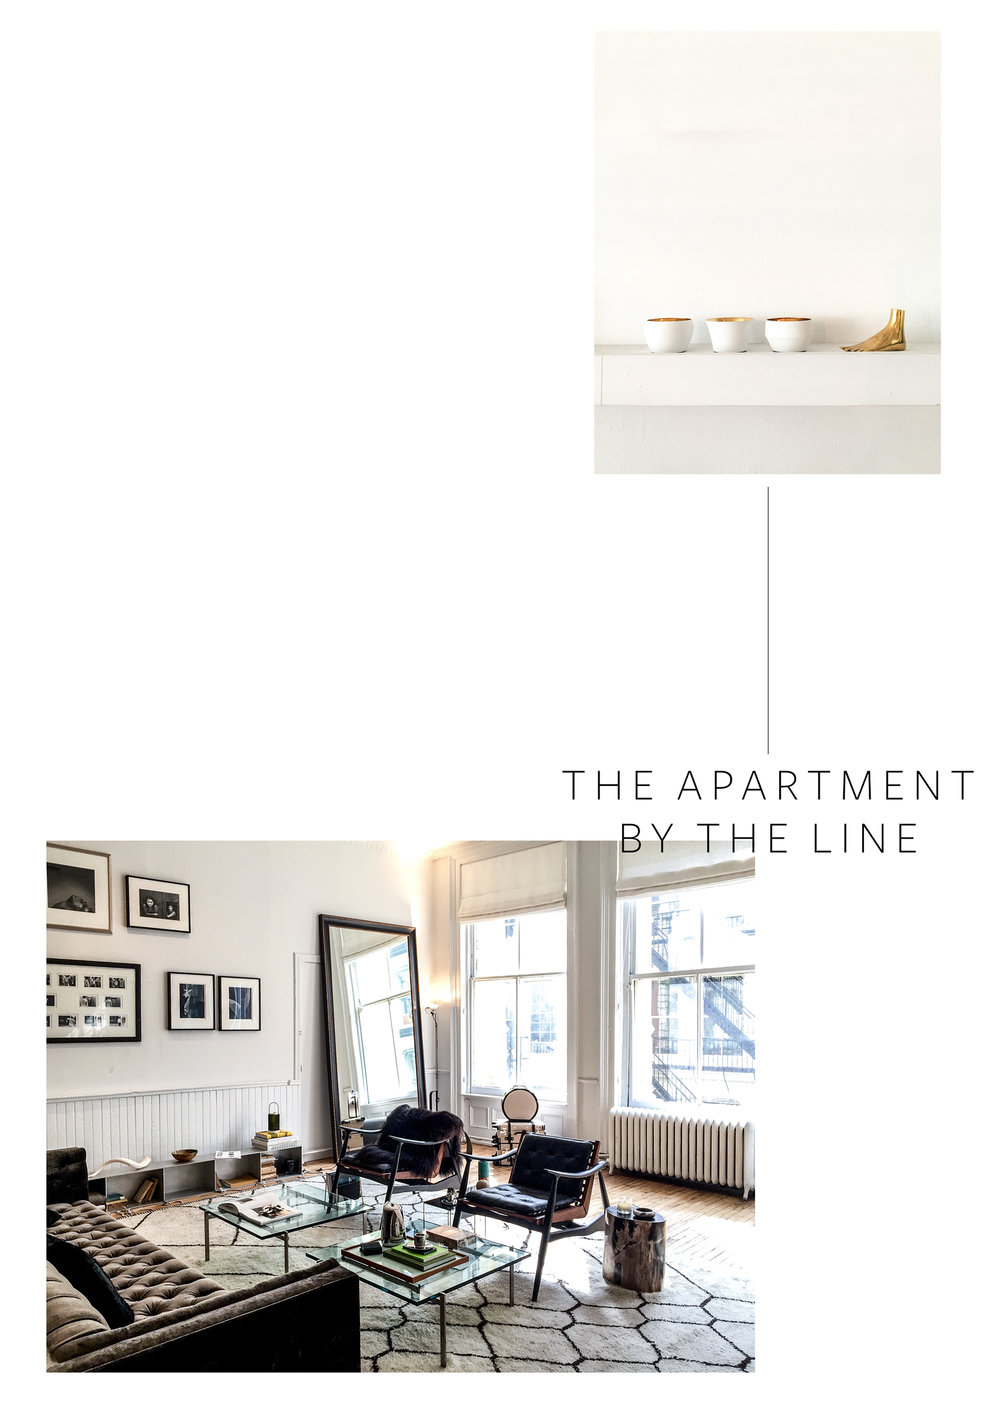 The Apartment by The Line